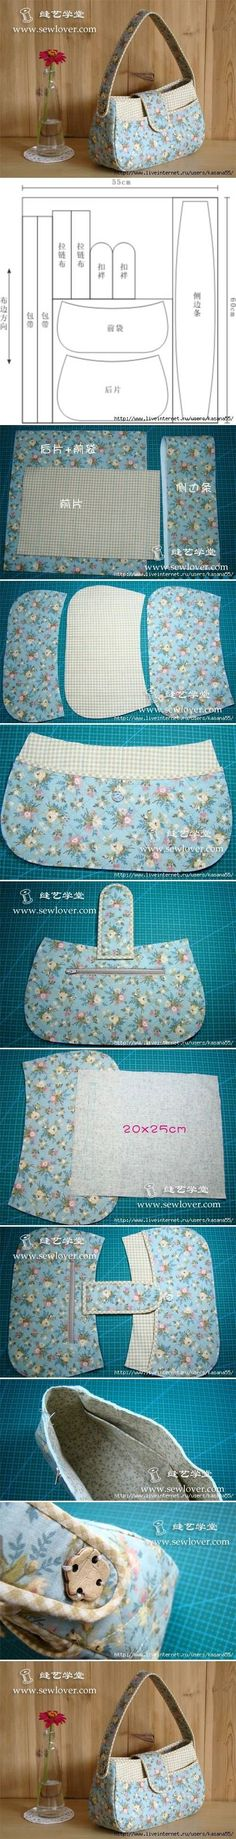 DIY Pretty Fashion Purse